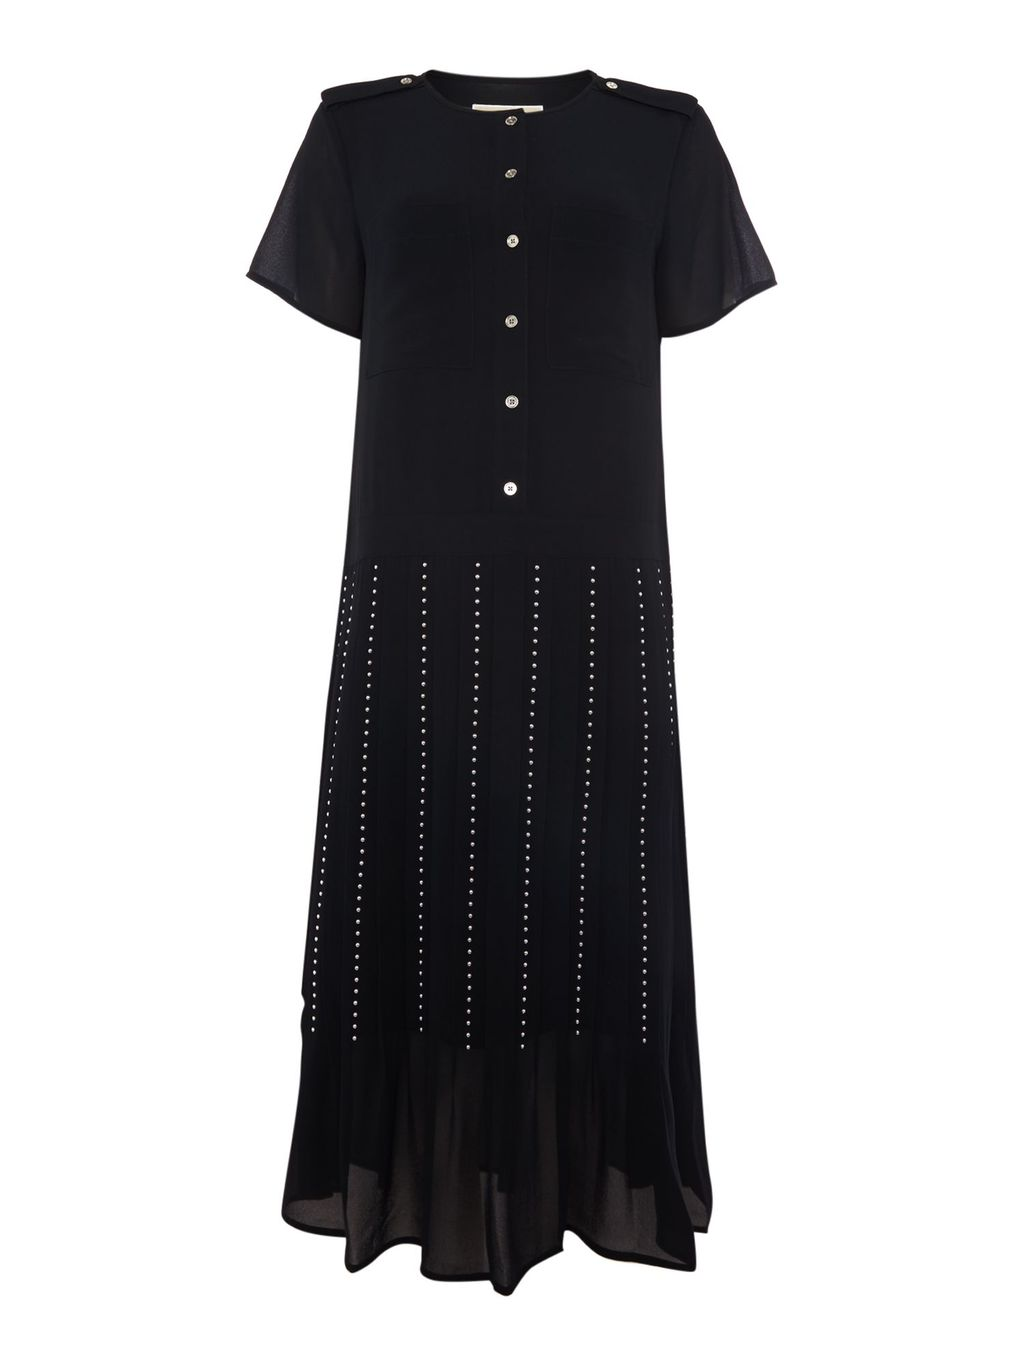 Short Sleeve Pleat Embellished Skirt, Navy - length: calf length; pattern: striped; fit: body skimming; style: pleated; waist: high rise; predominant colour: navy; fibres: polyester/polyamide - 100%; hip detail: soft pleats at hip/draping at hip/flared at hip; texture group: sheer fabrics/chiffon/organza etc.; pattern type: fabric; occasions: creative work; season: a/w 2015; wardrobe: highlight